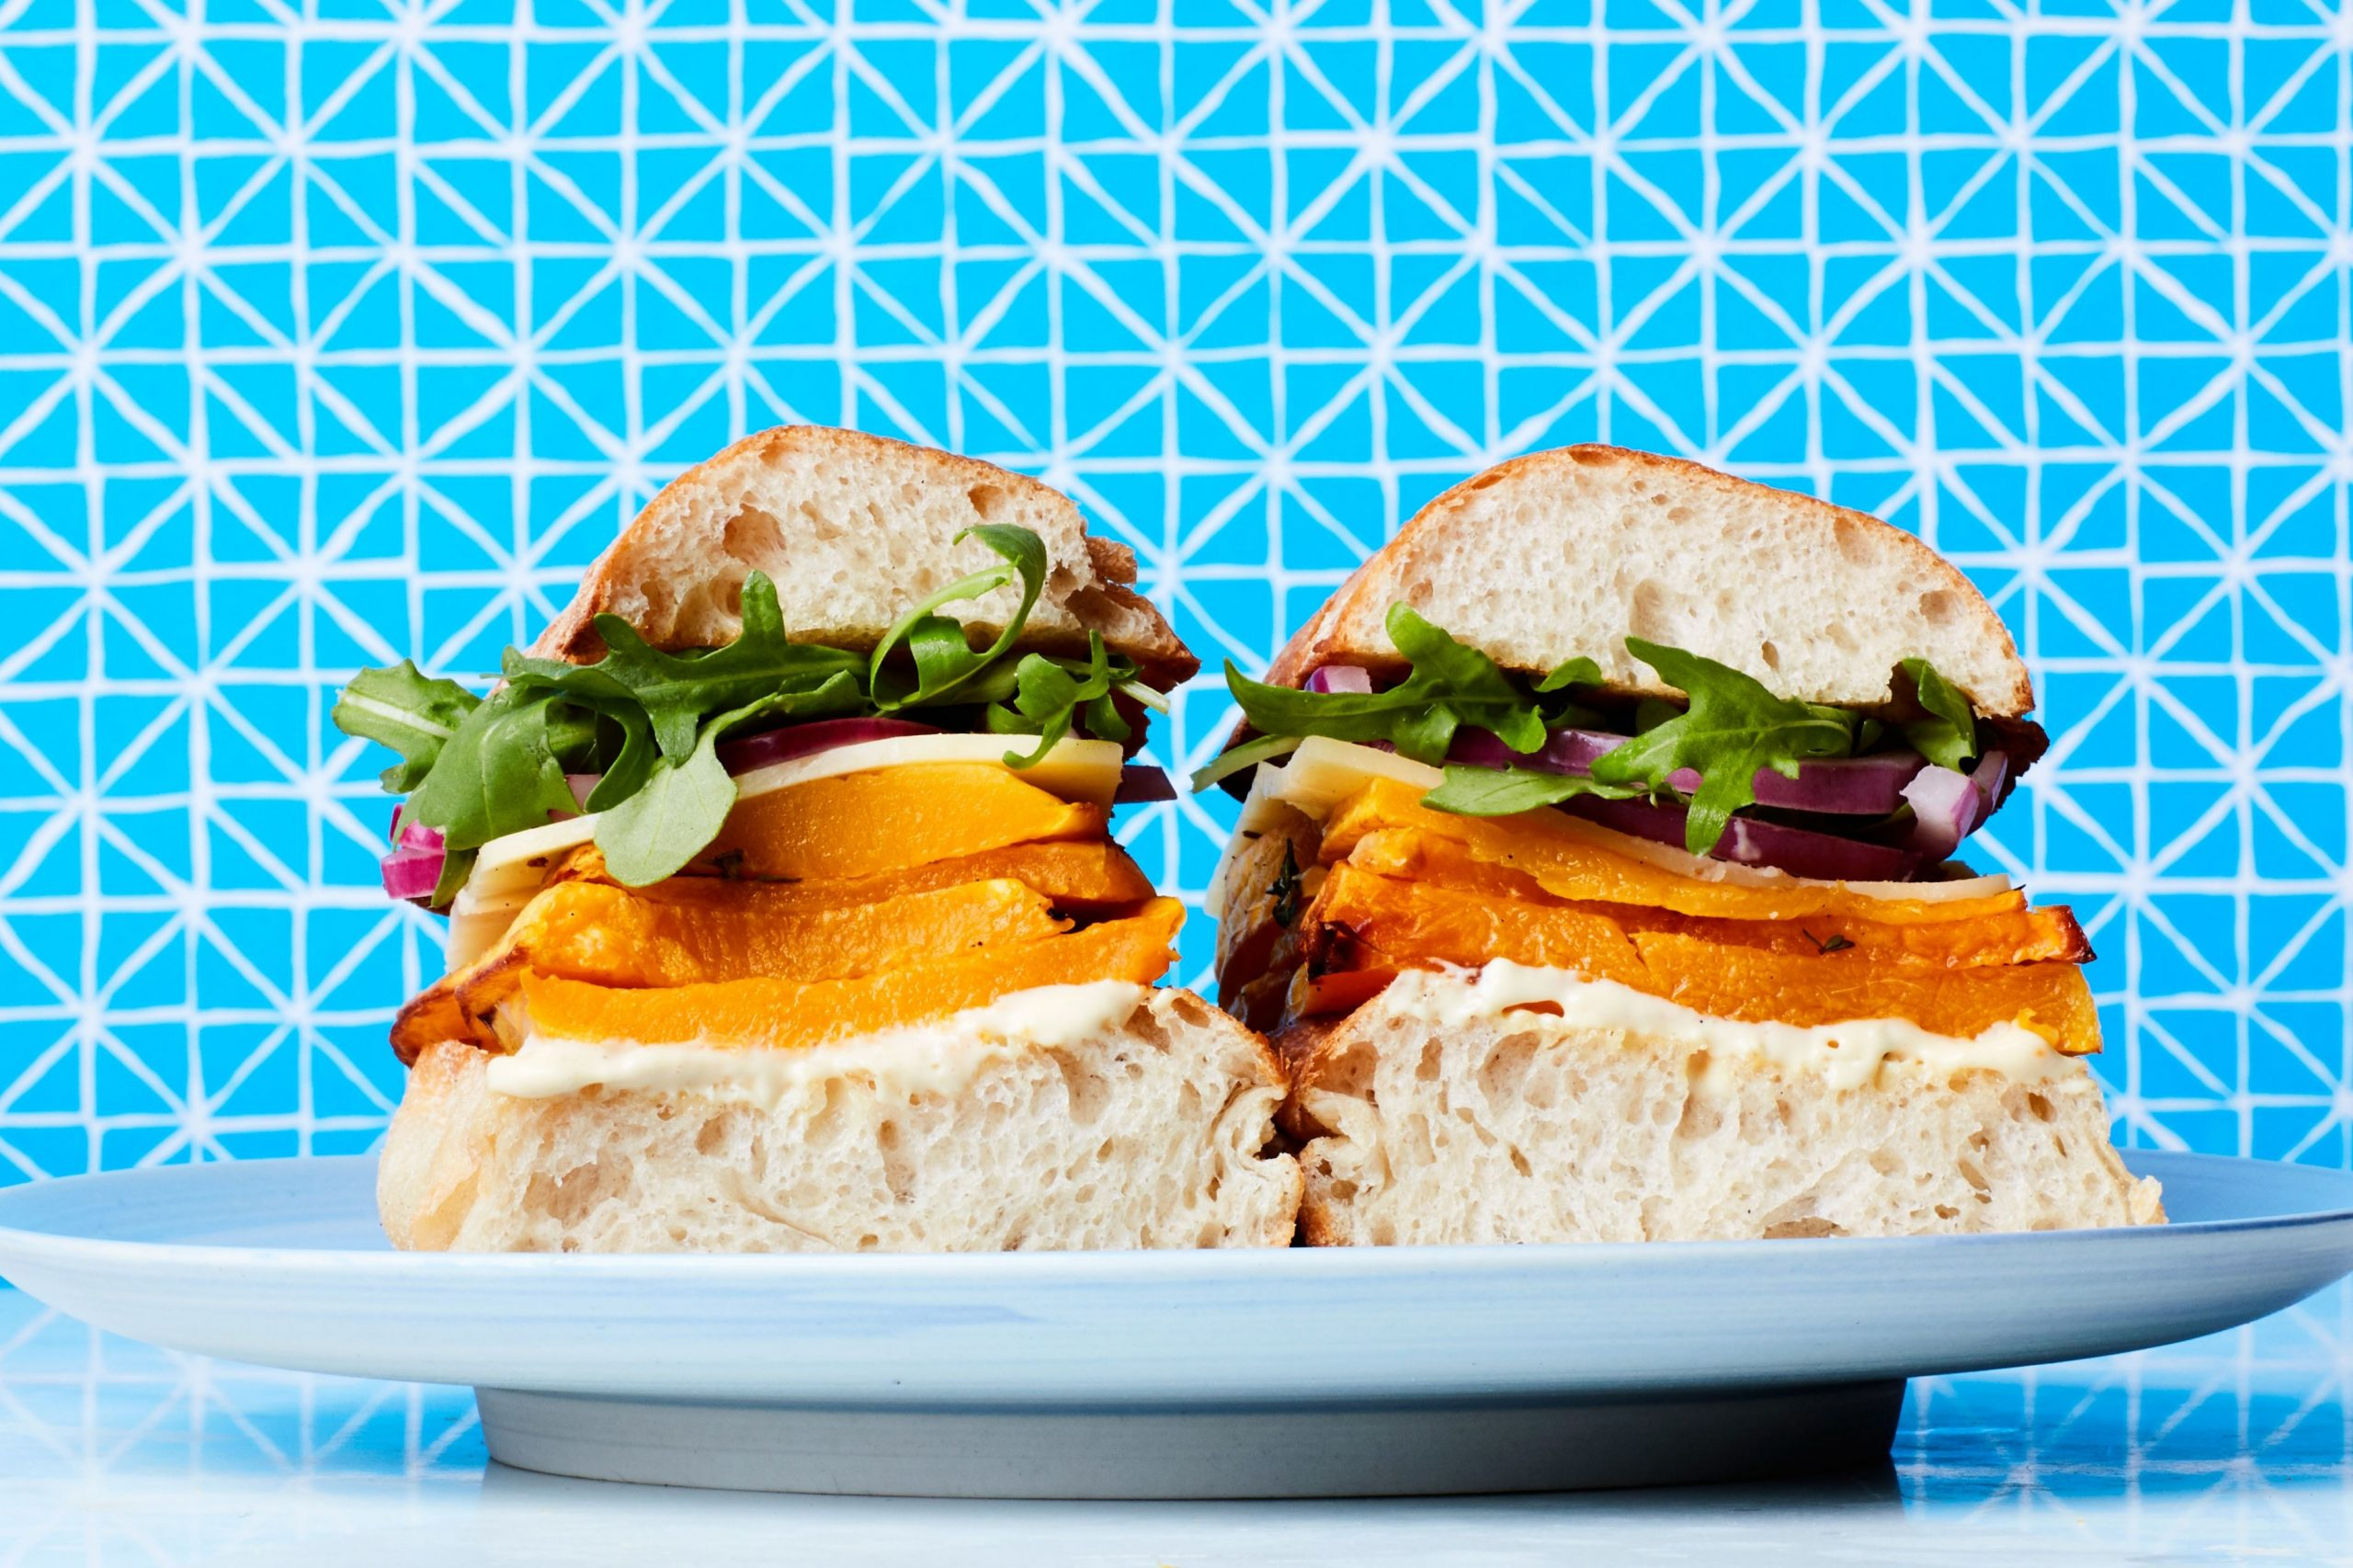 Butternut Squash Sandwich with Cheddar Cheese and Pickled Red Onion - Sandwich Recipes Epicurious